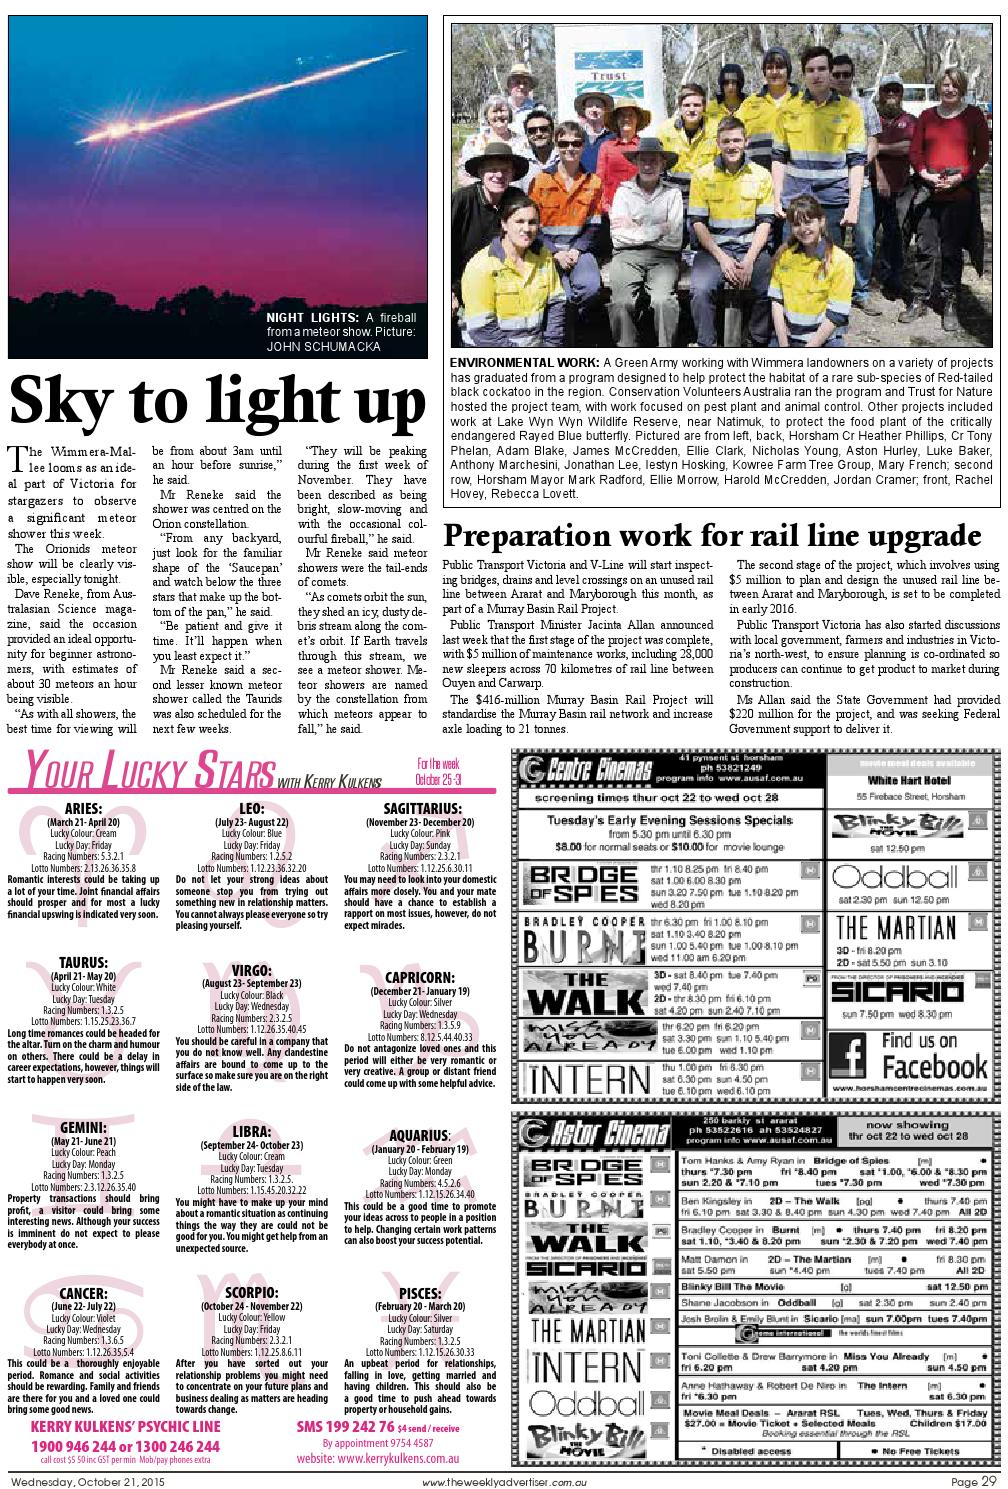 The Weekly Advertiser - Wednesday, October 21, 2015 by The